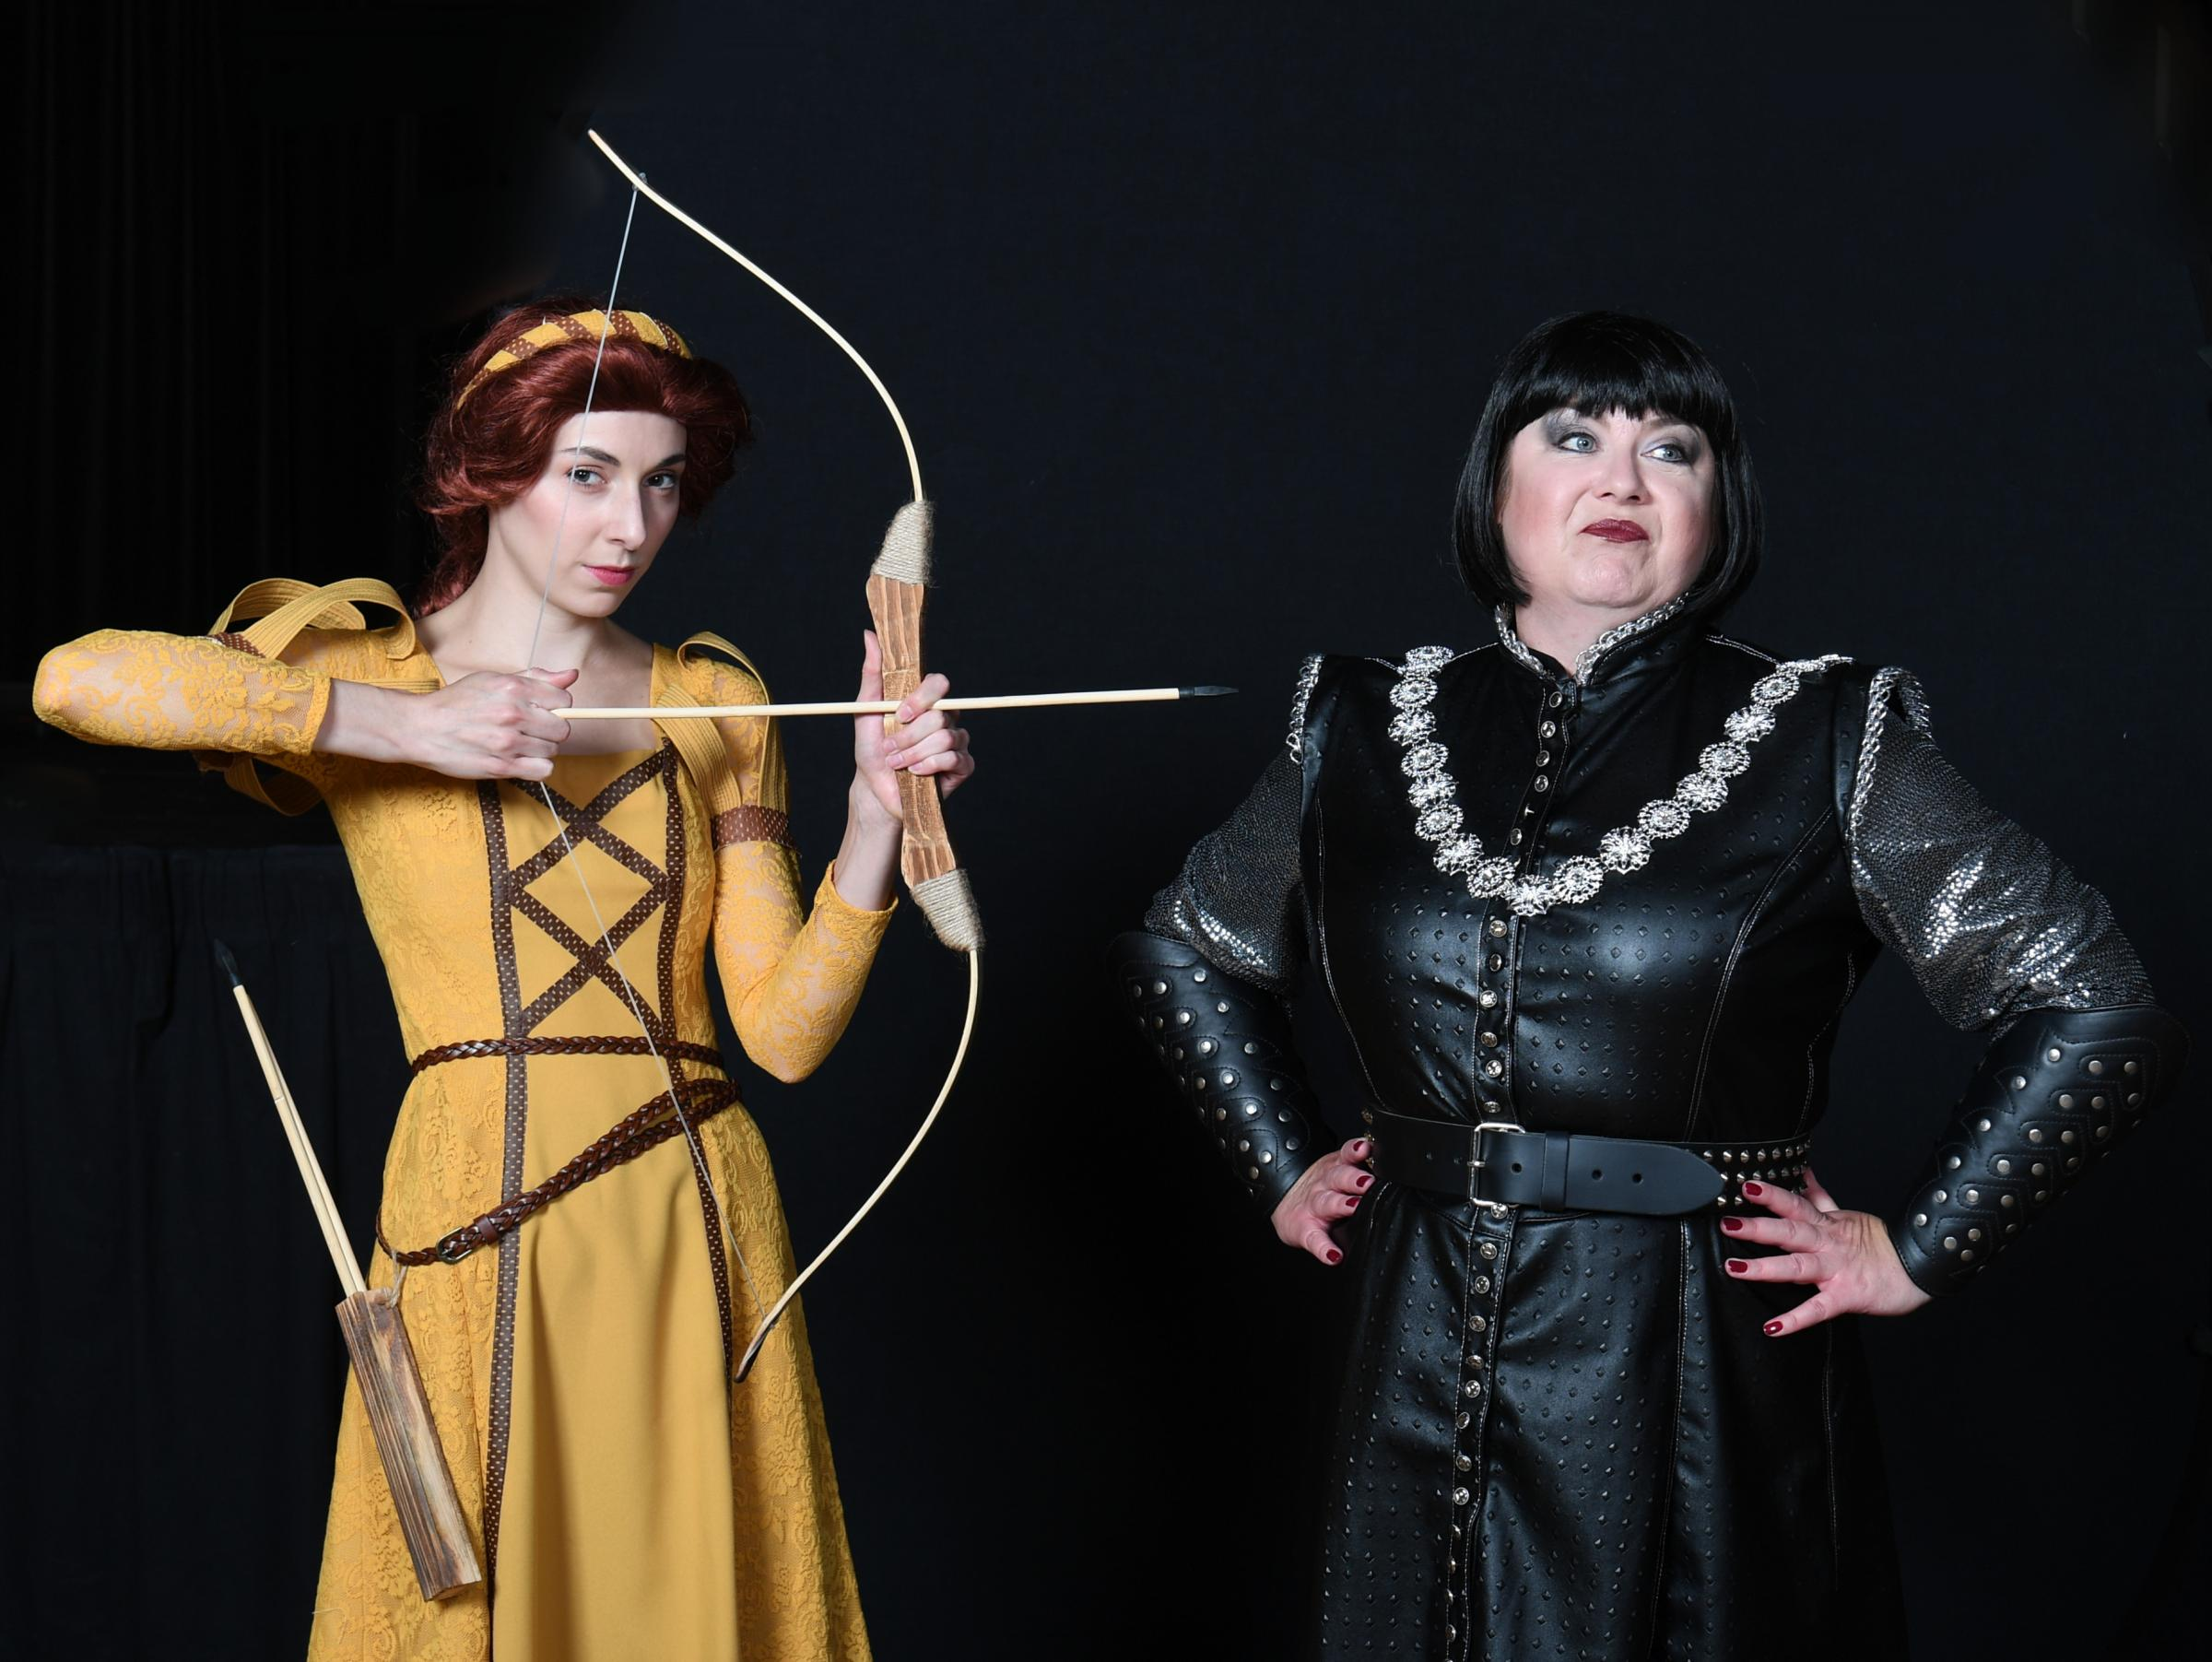 POINTED COMMENTS: Maid Marian (Genevieve Lowe) and Liz Grand as the baddie, The Sheriff of Nottingham.